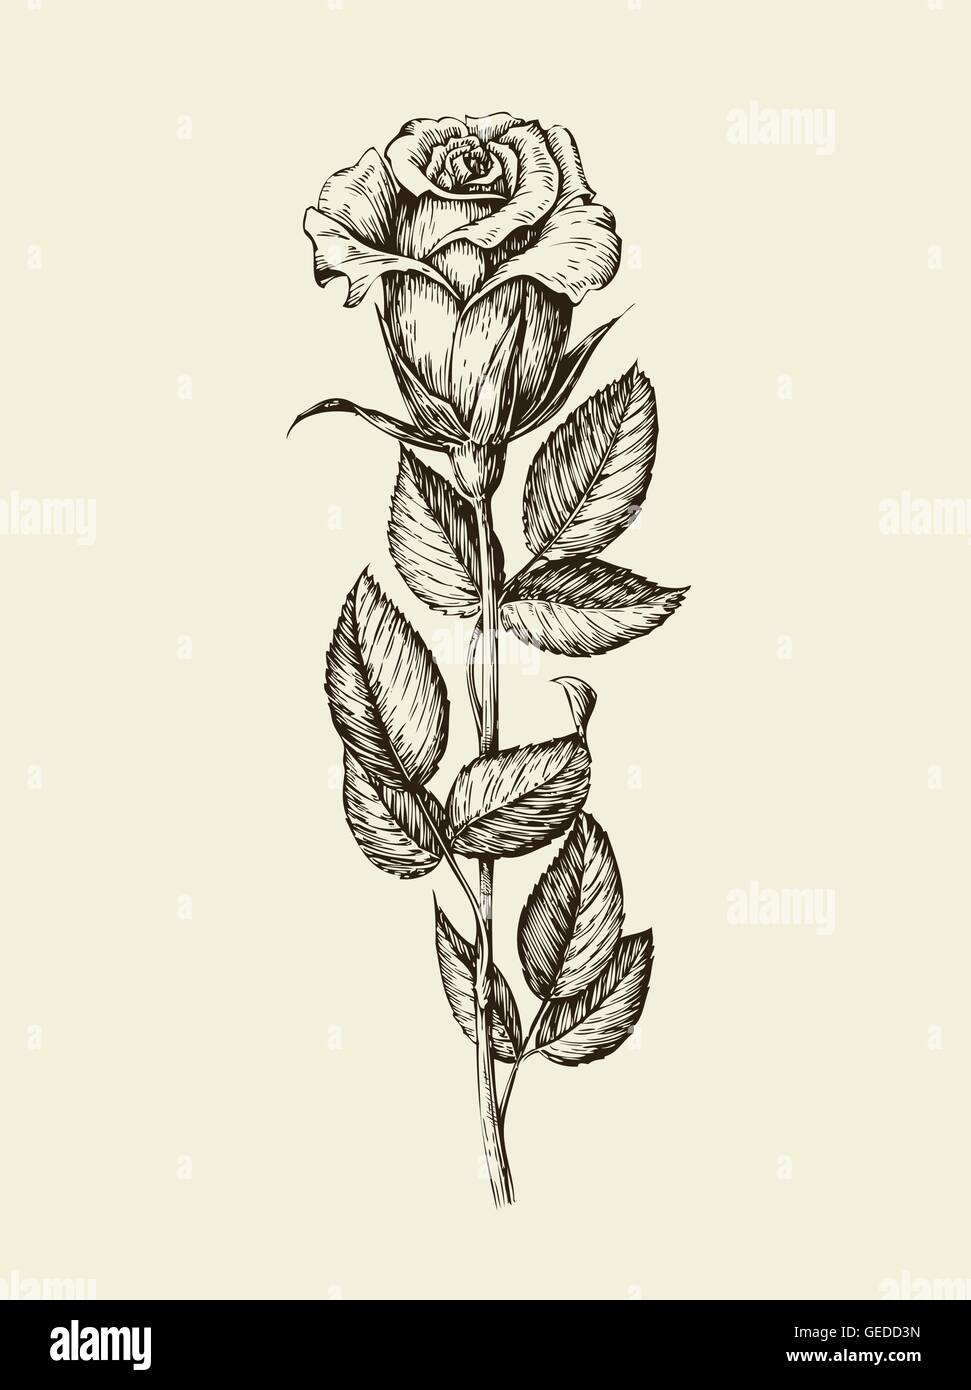 The Rose And Thorn Stock Vector Images Alamy Flower Line Diagram Simple Drawing Of Bud Hand Drawn Vintage Illustration